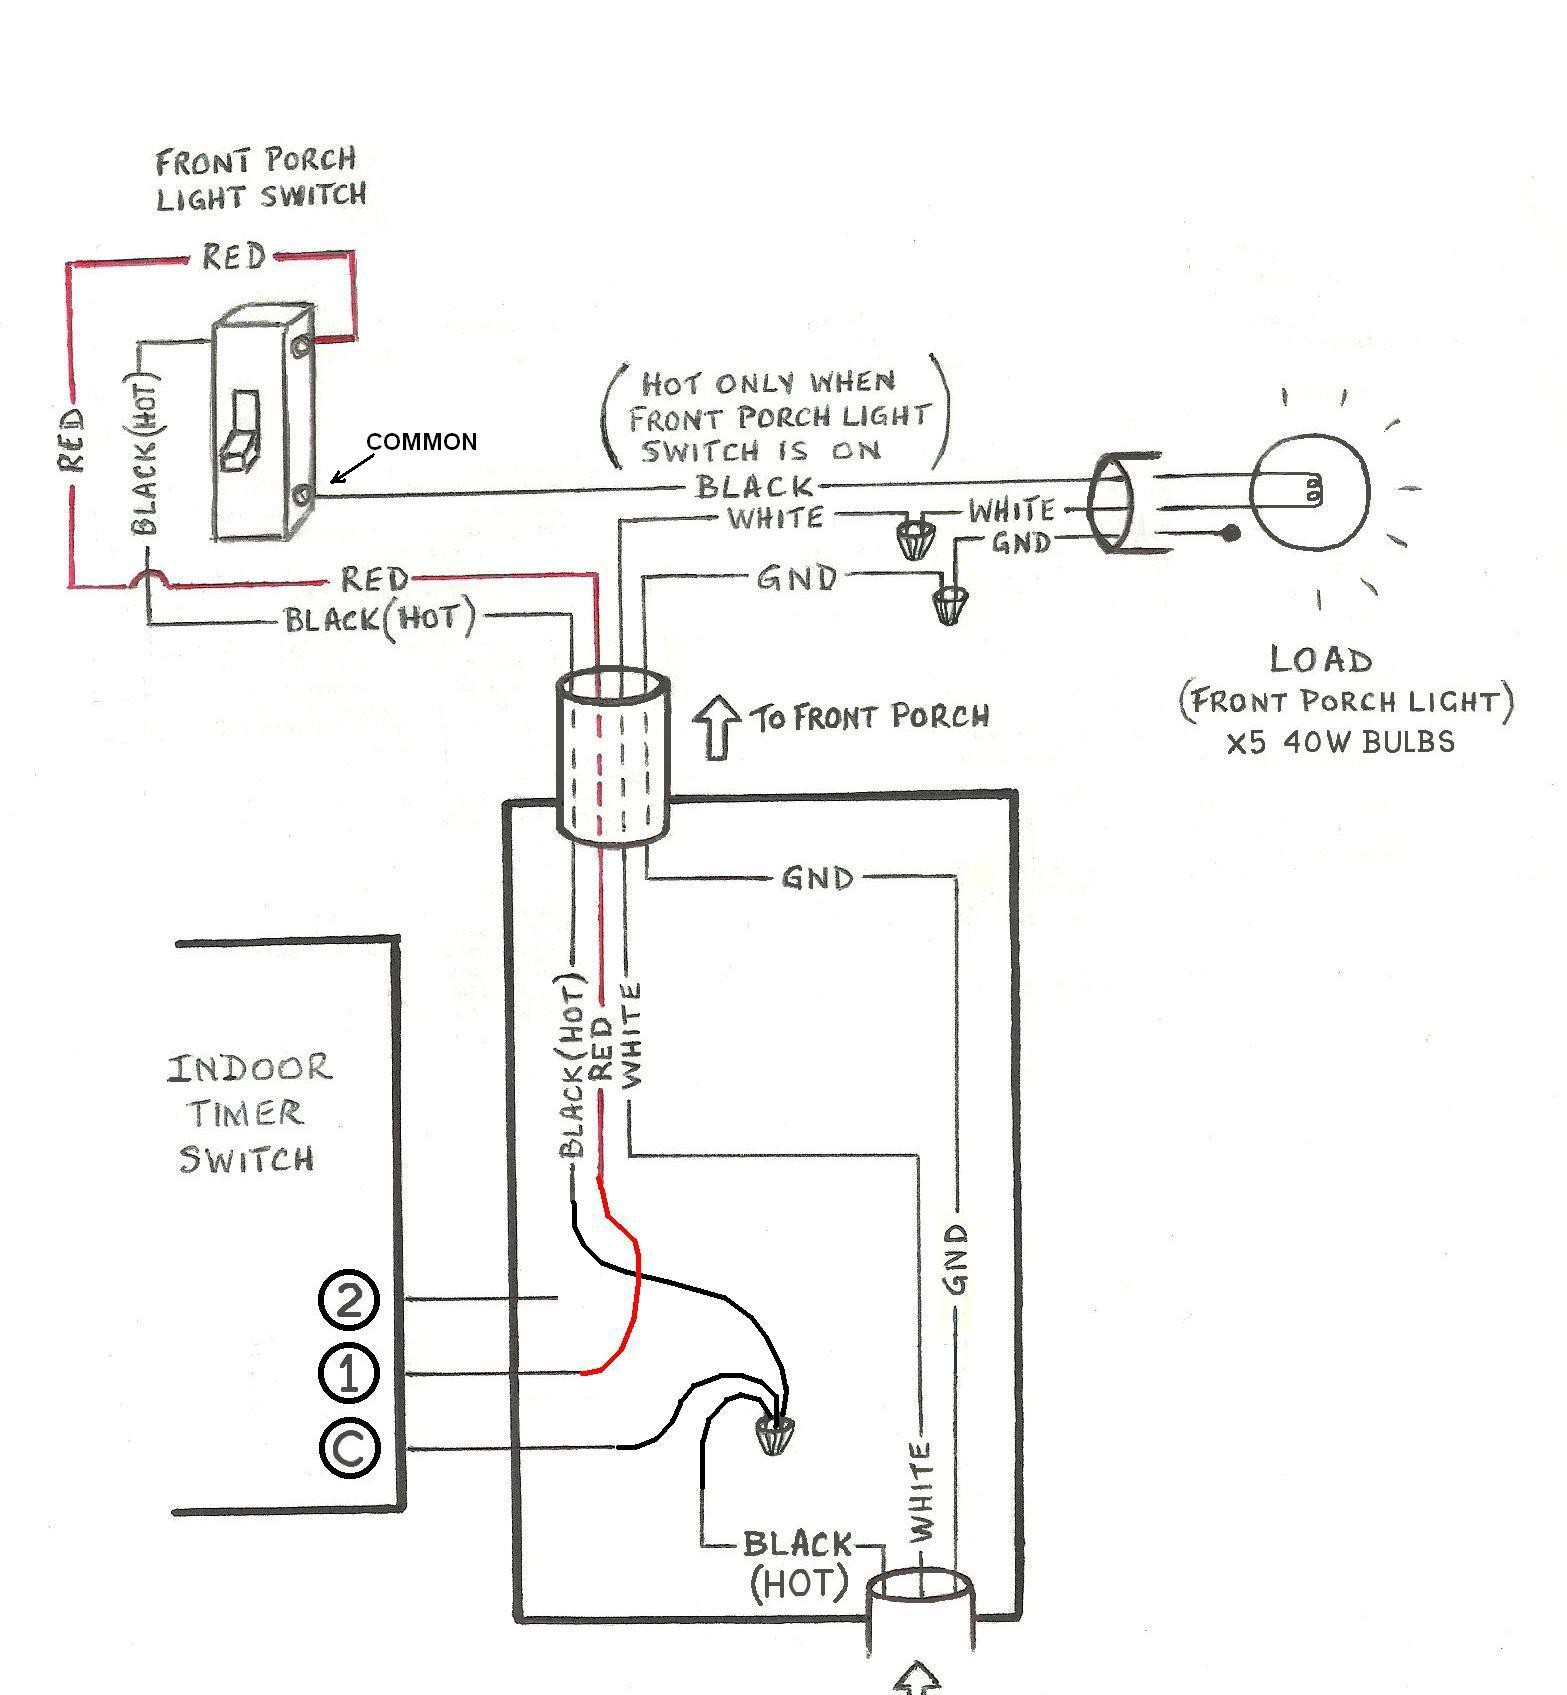 jandy 4 button spa side remote wiring diagram Download-4 way switch wiring diagram pdf Collection 4 Way Switch Wiring Diagram Multiple Lights Pdf 12-g